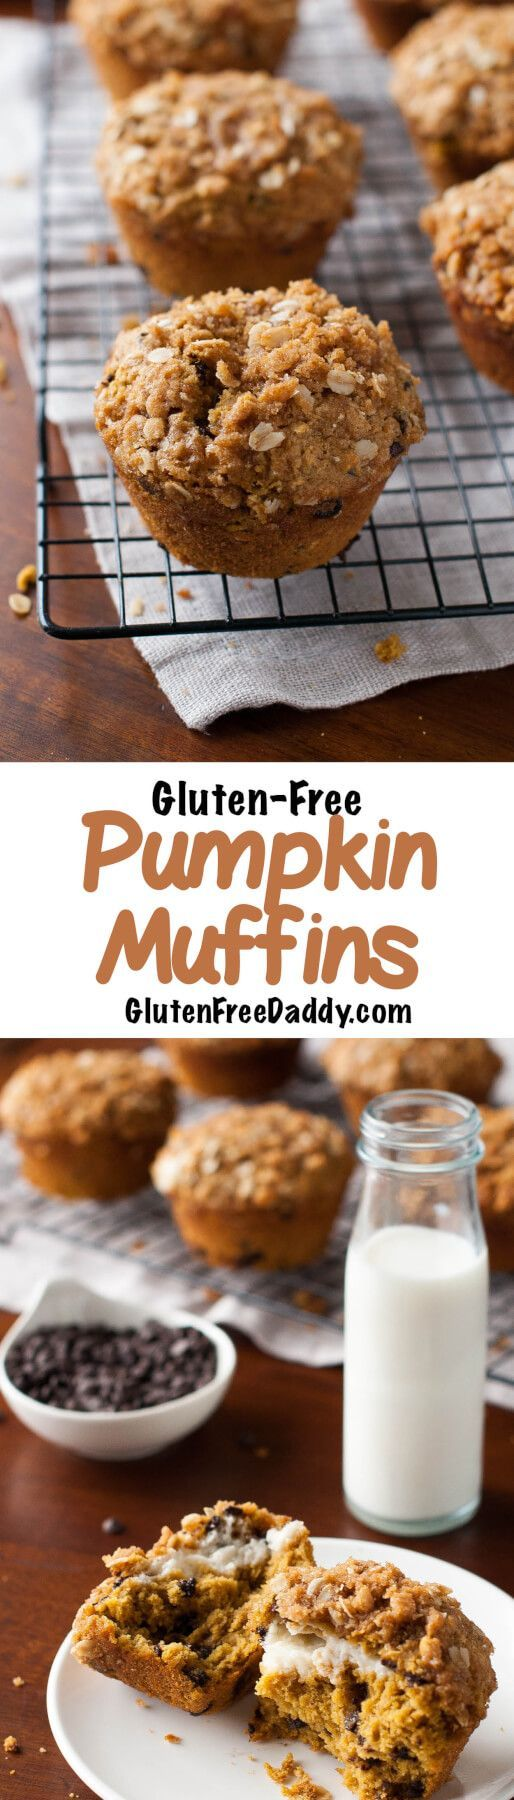 This gluten-free pumpkin Muffins Recipe with Cream Cheese Filling and Streusel Topping is really good - I love the topping on these - it just puts them over the edge good!